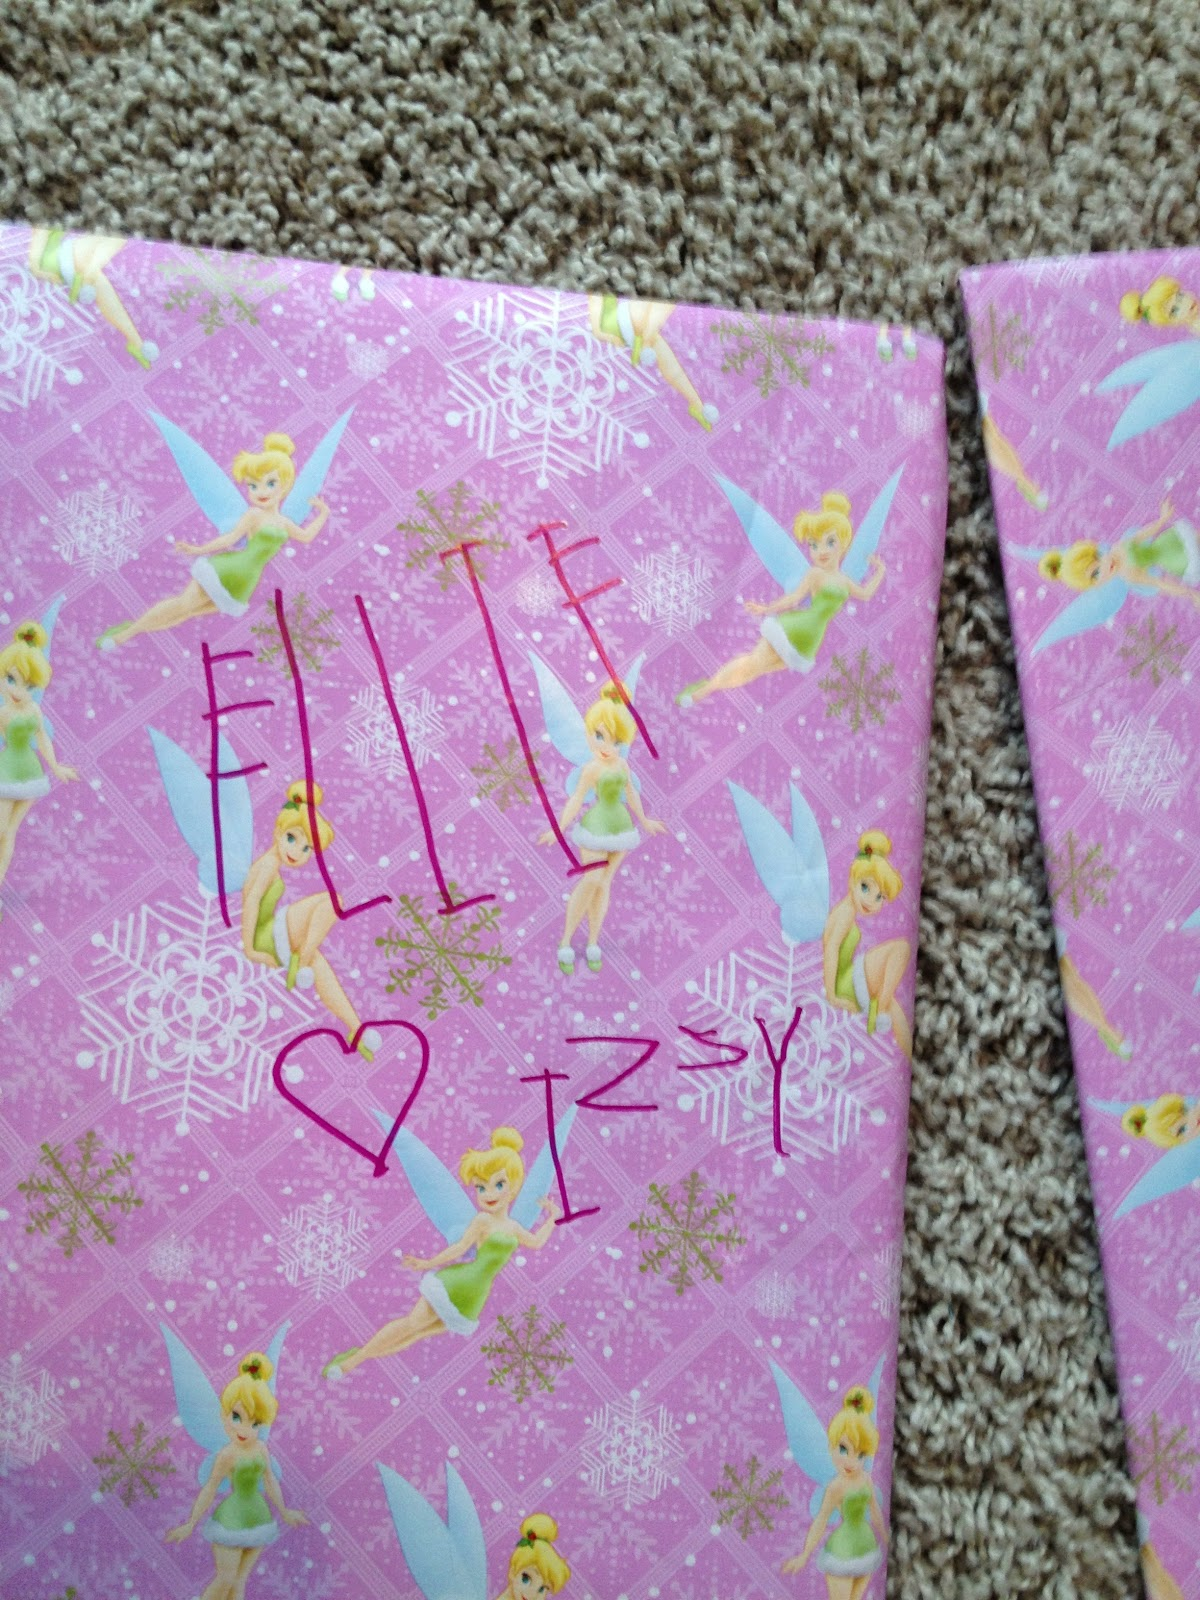 Delightful Mom Stuff December 2012 N Bab Girl Set Pink White Rose Size 4t Papa Stayed With Us For 6 Days In Town From Az He Has Early Stages Of Alzheimers So We Felt Really Blessed That Got To Travel Here The Girls Love